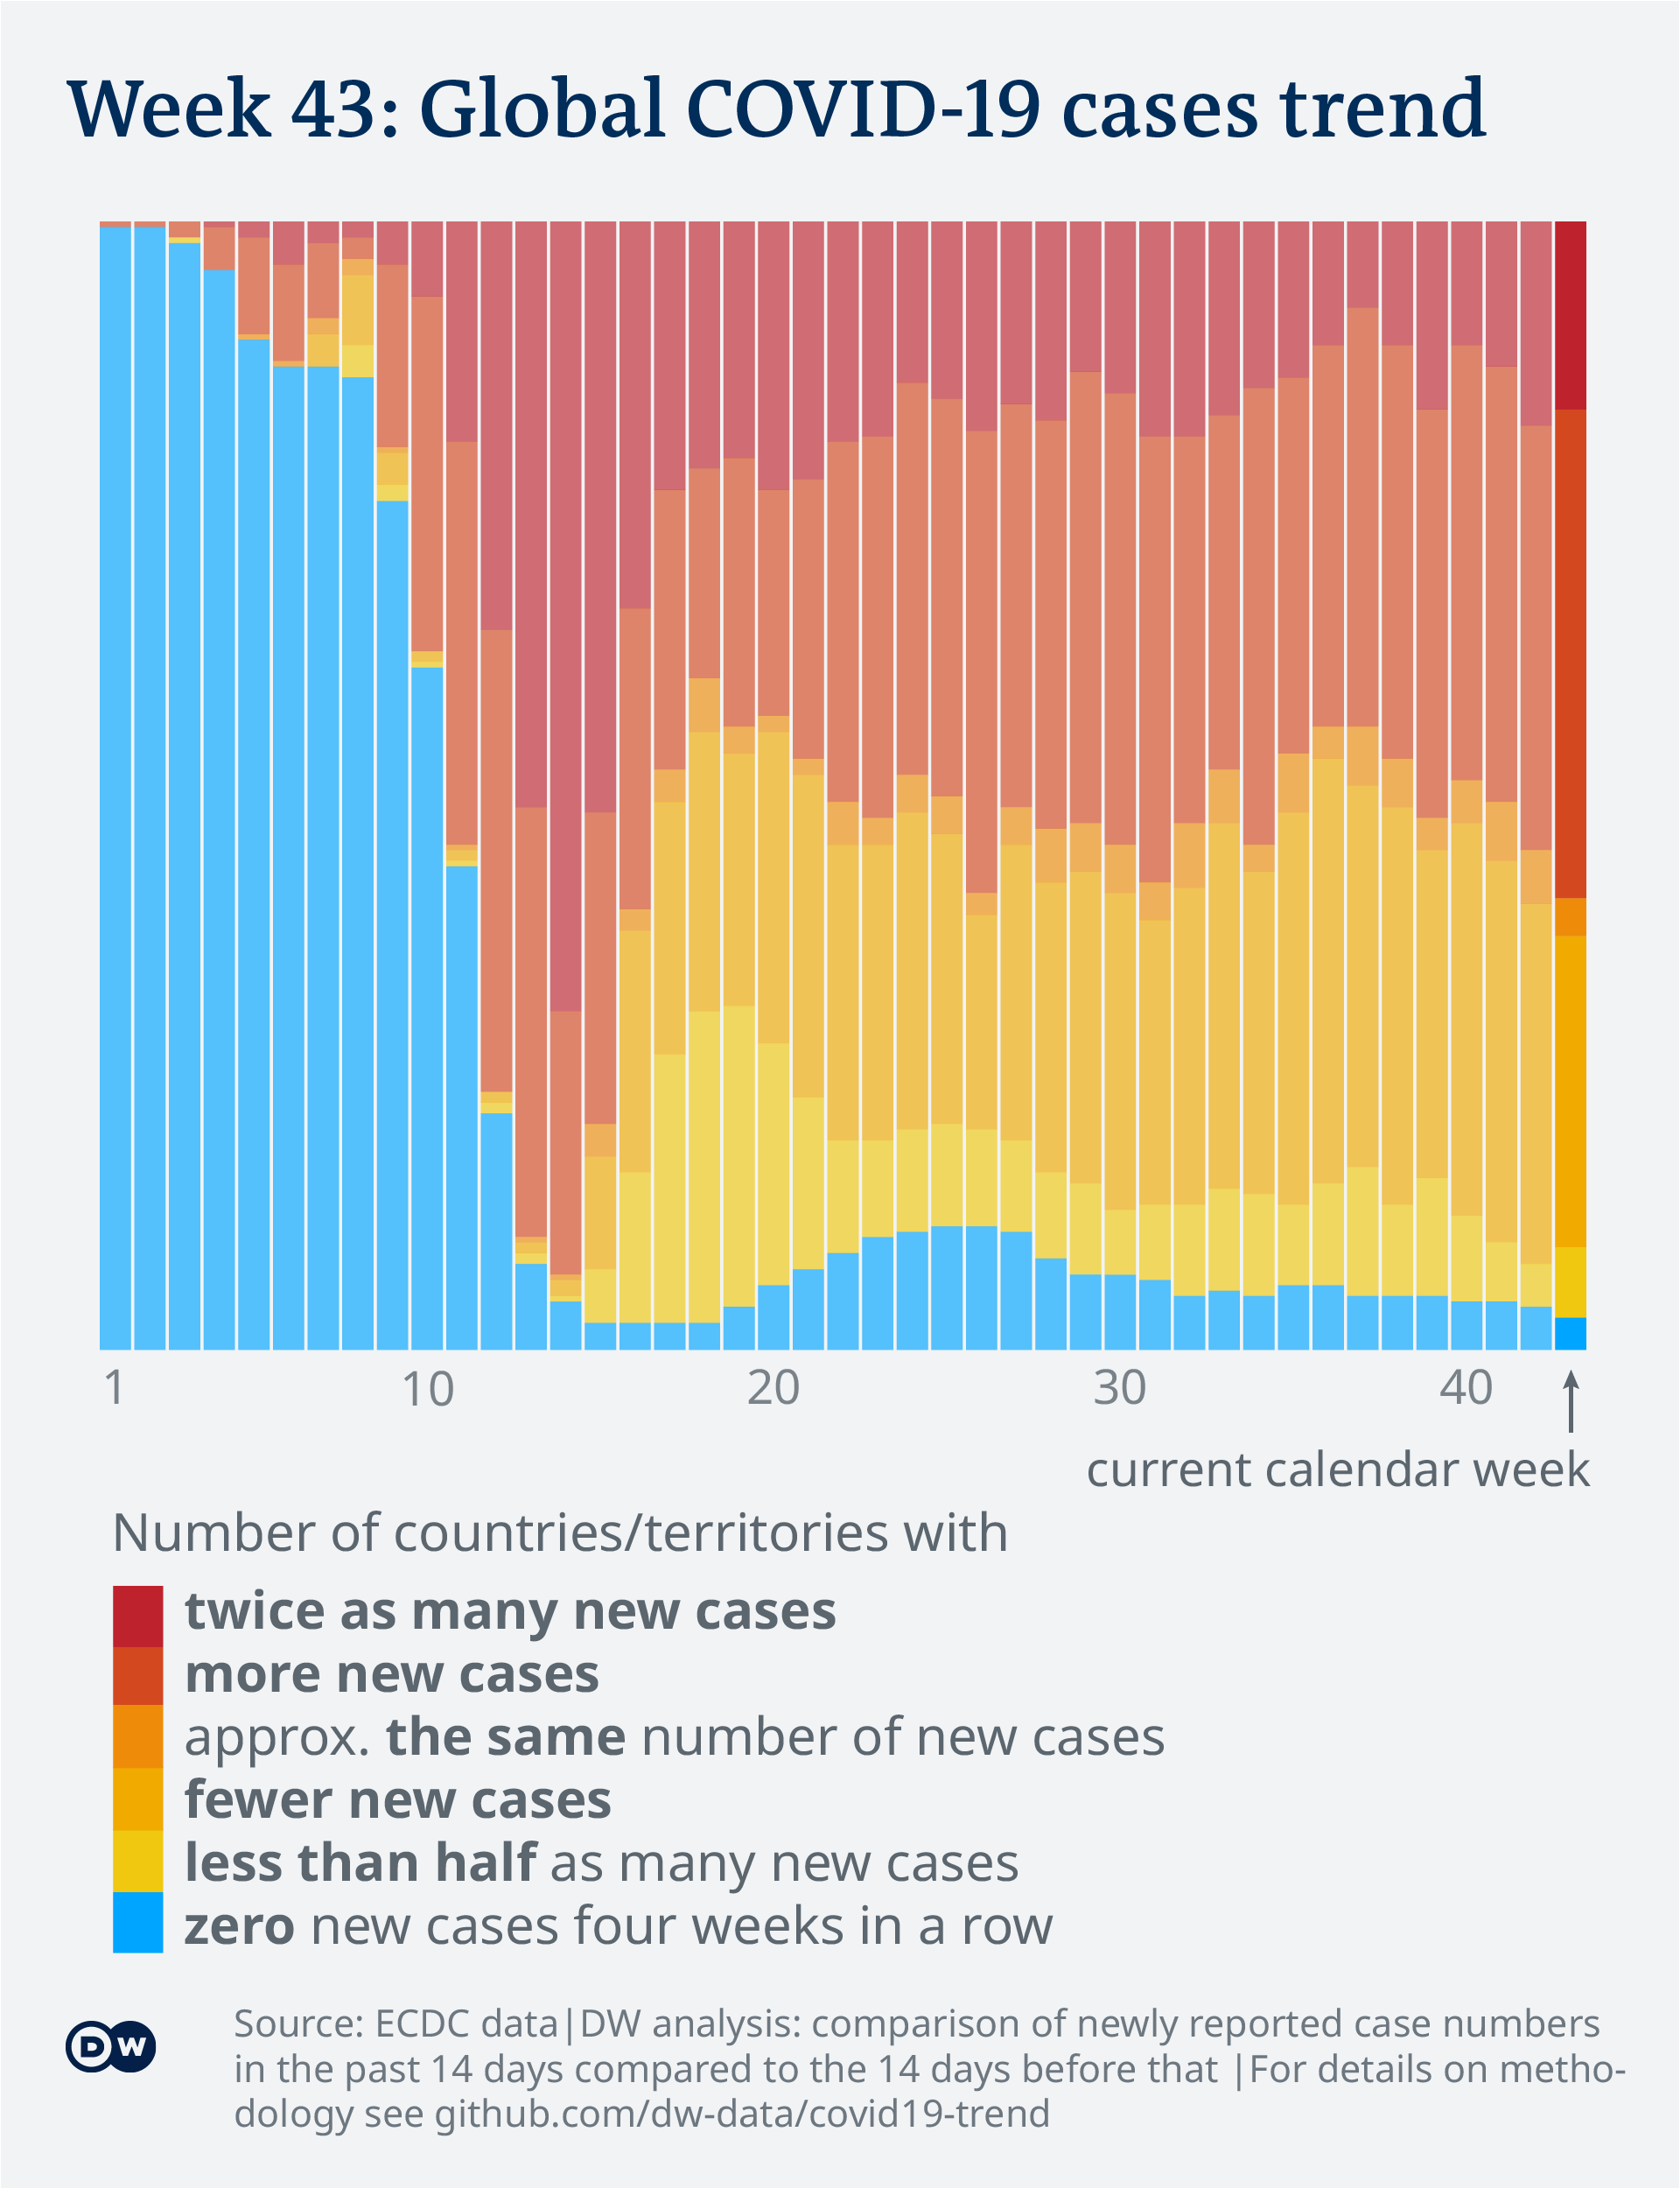 Data visualization: COVID-19 global new case numbers trend - until calendar week 43